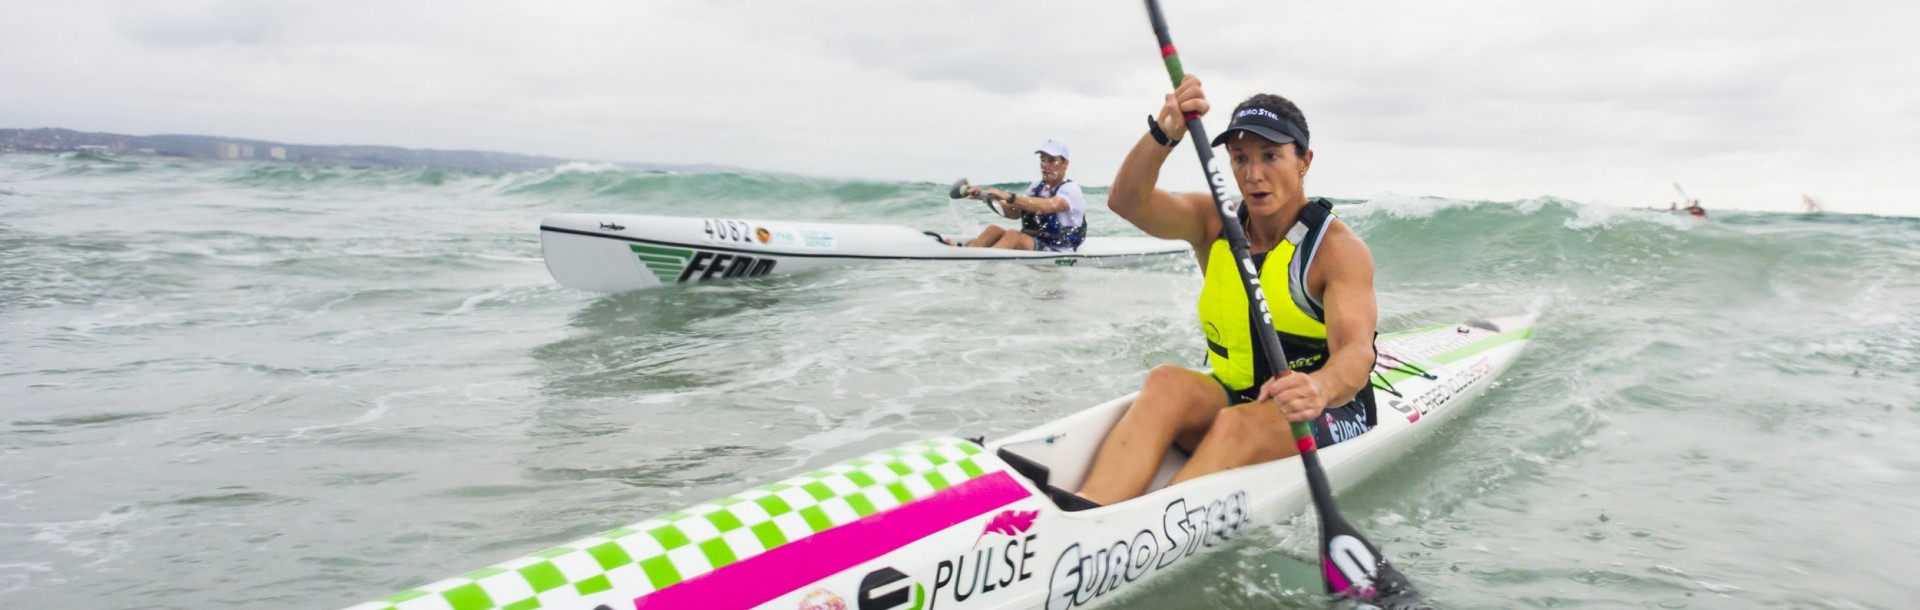 Hong Kong poised for elite action at ICF Ocean Racing World Championships